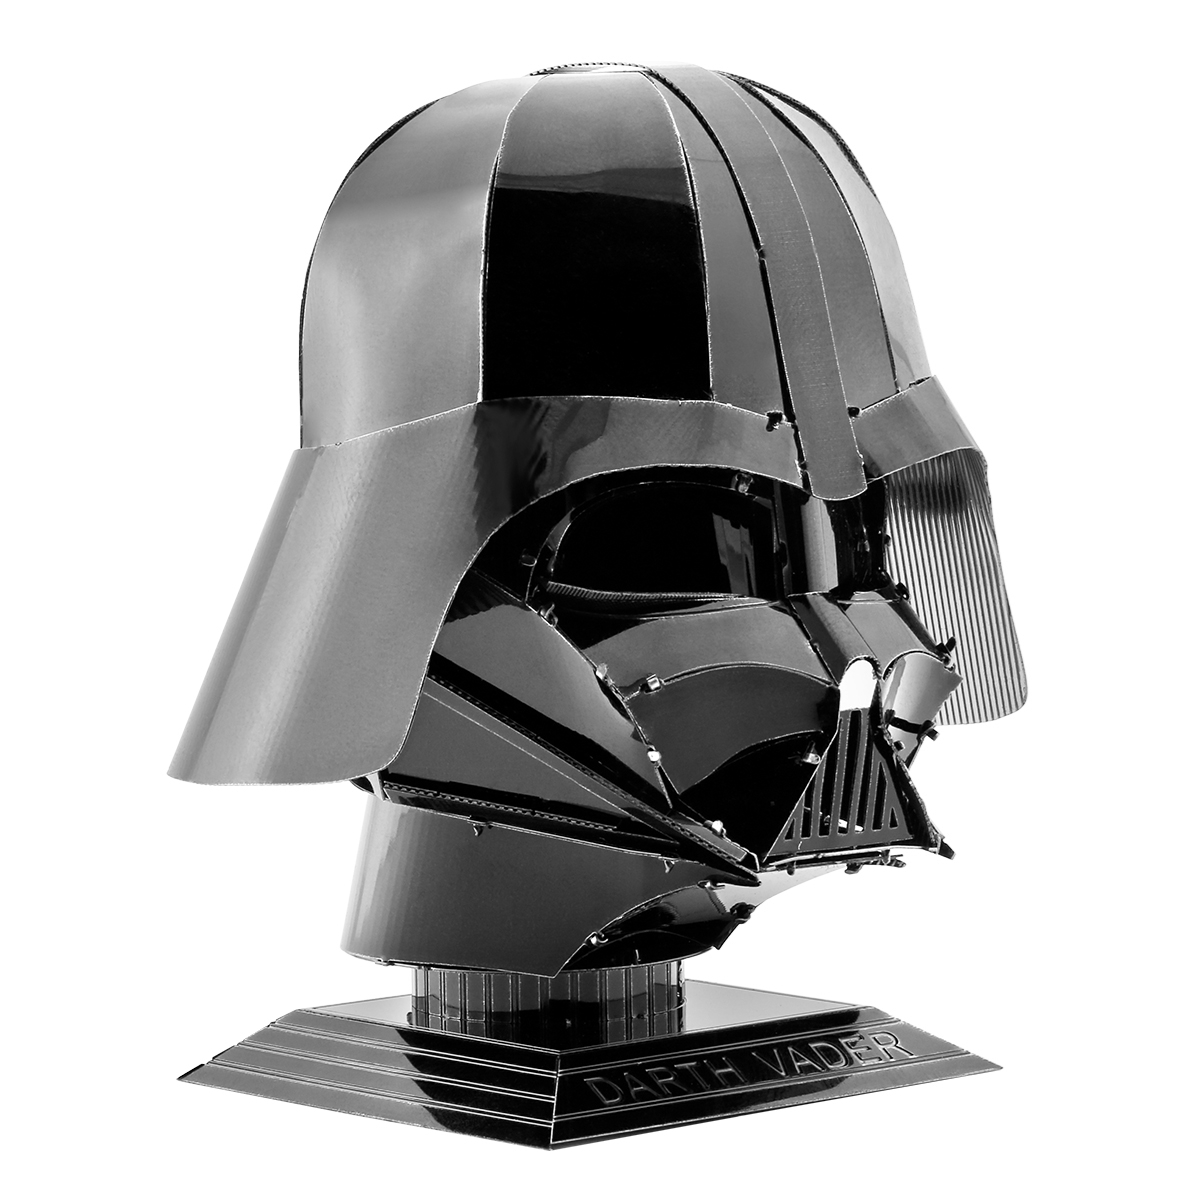 c748d061b Picture of Darth Vader Helmet Picture of Darth Vader Helmet